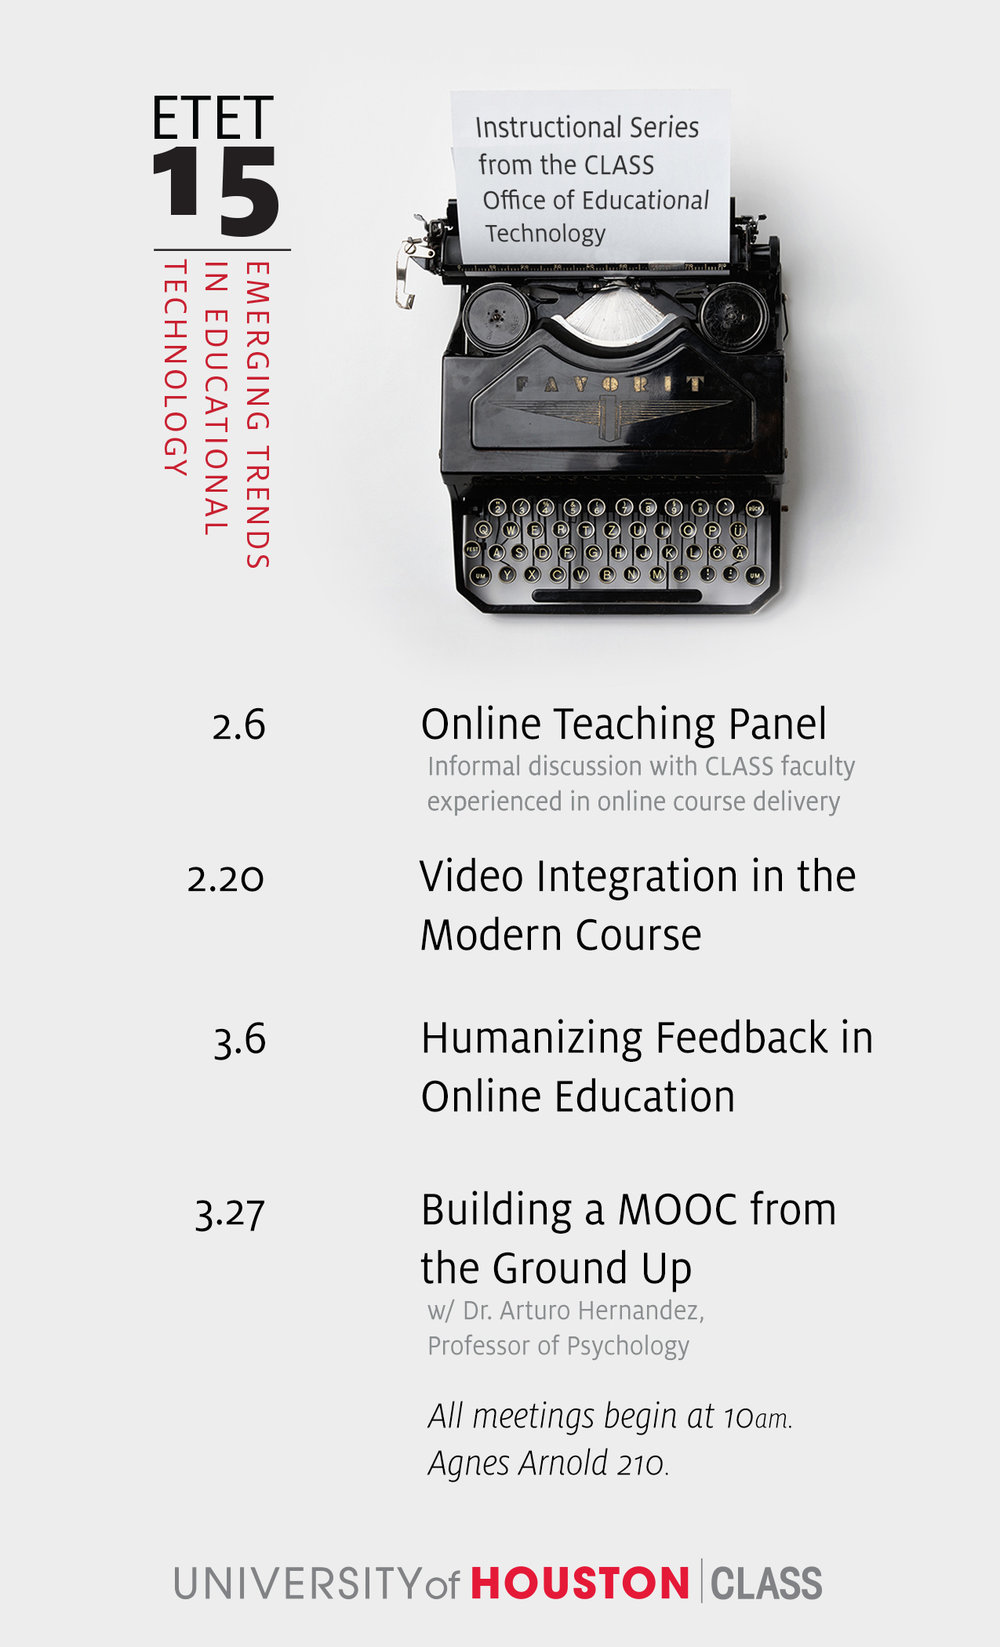 Flier Design I created for the first Emerging Trends in Educational Technology series at UH